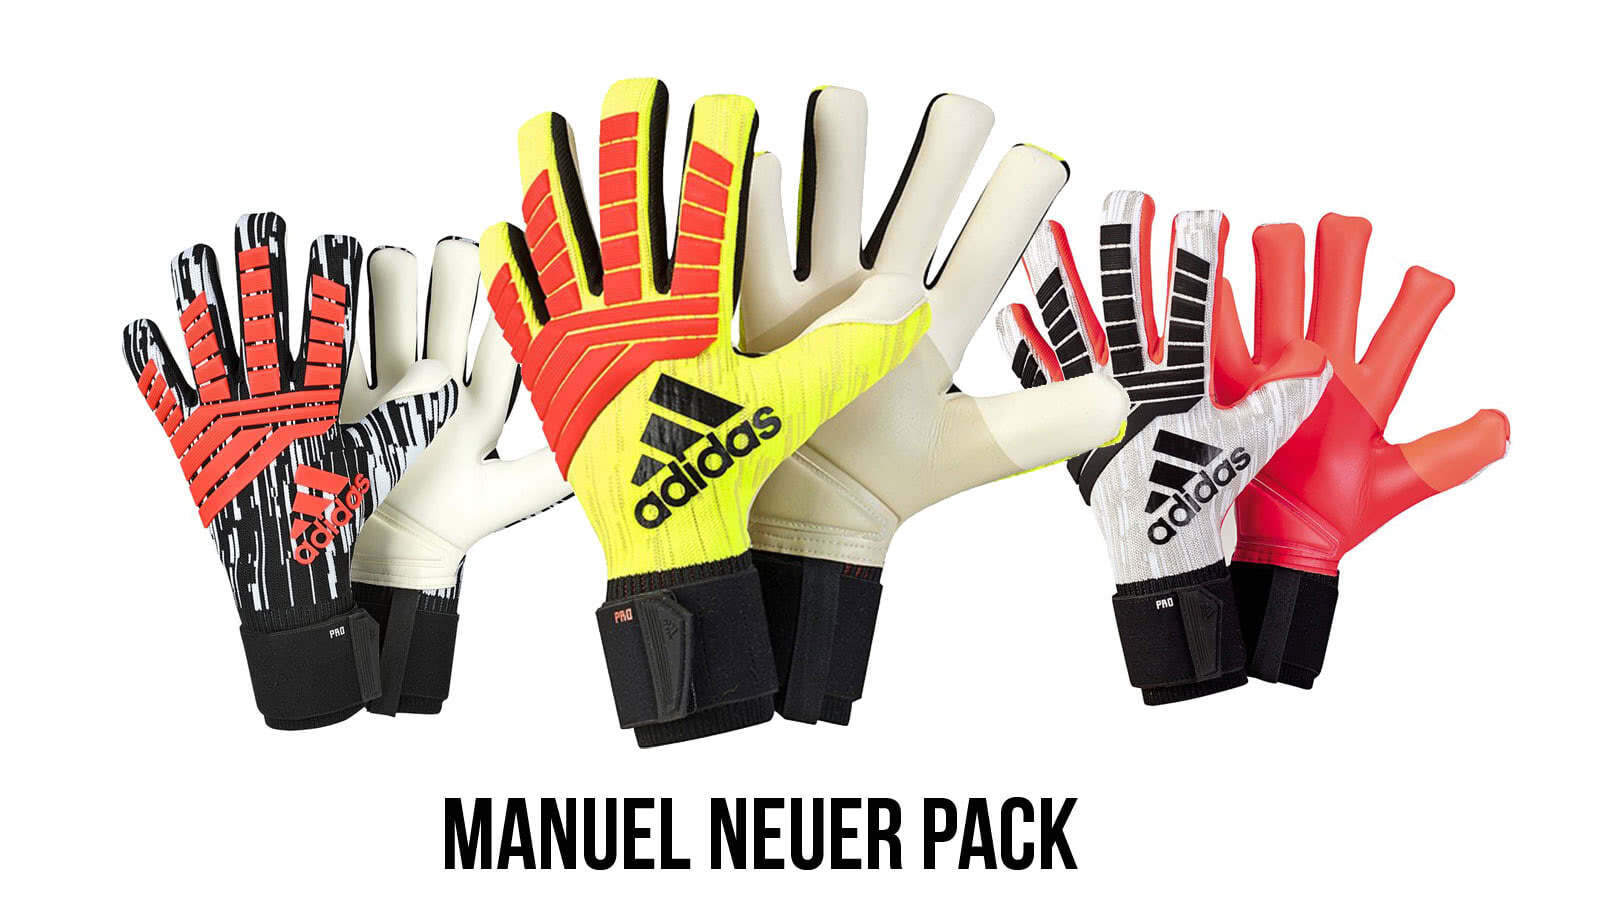 new product official store classic shoes adidas Manuel Neuer Torwarthandschuhe 2018/2019 (3x Handschuhe!